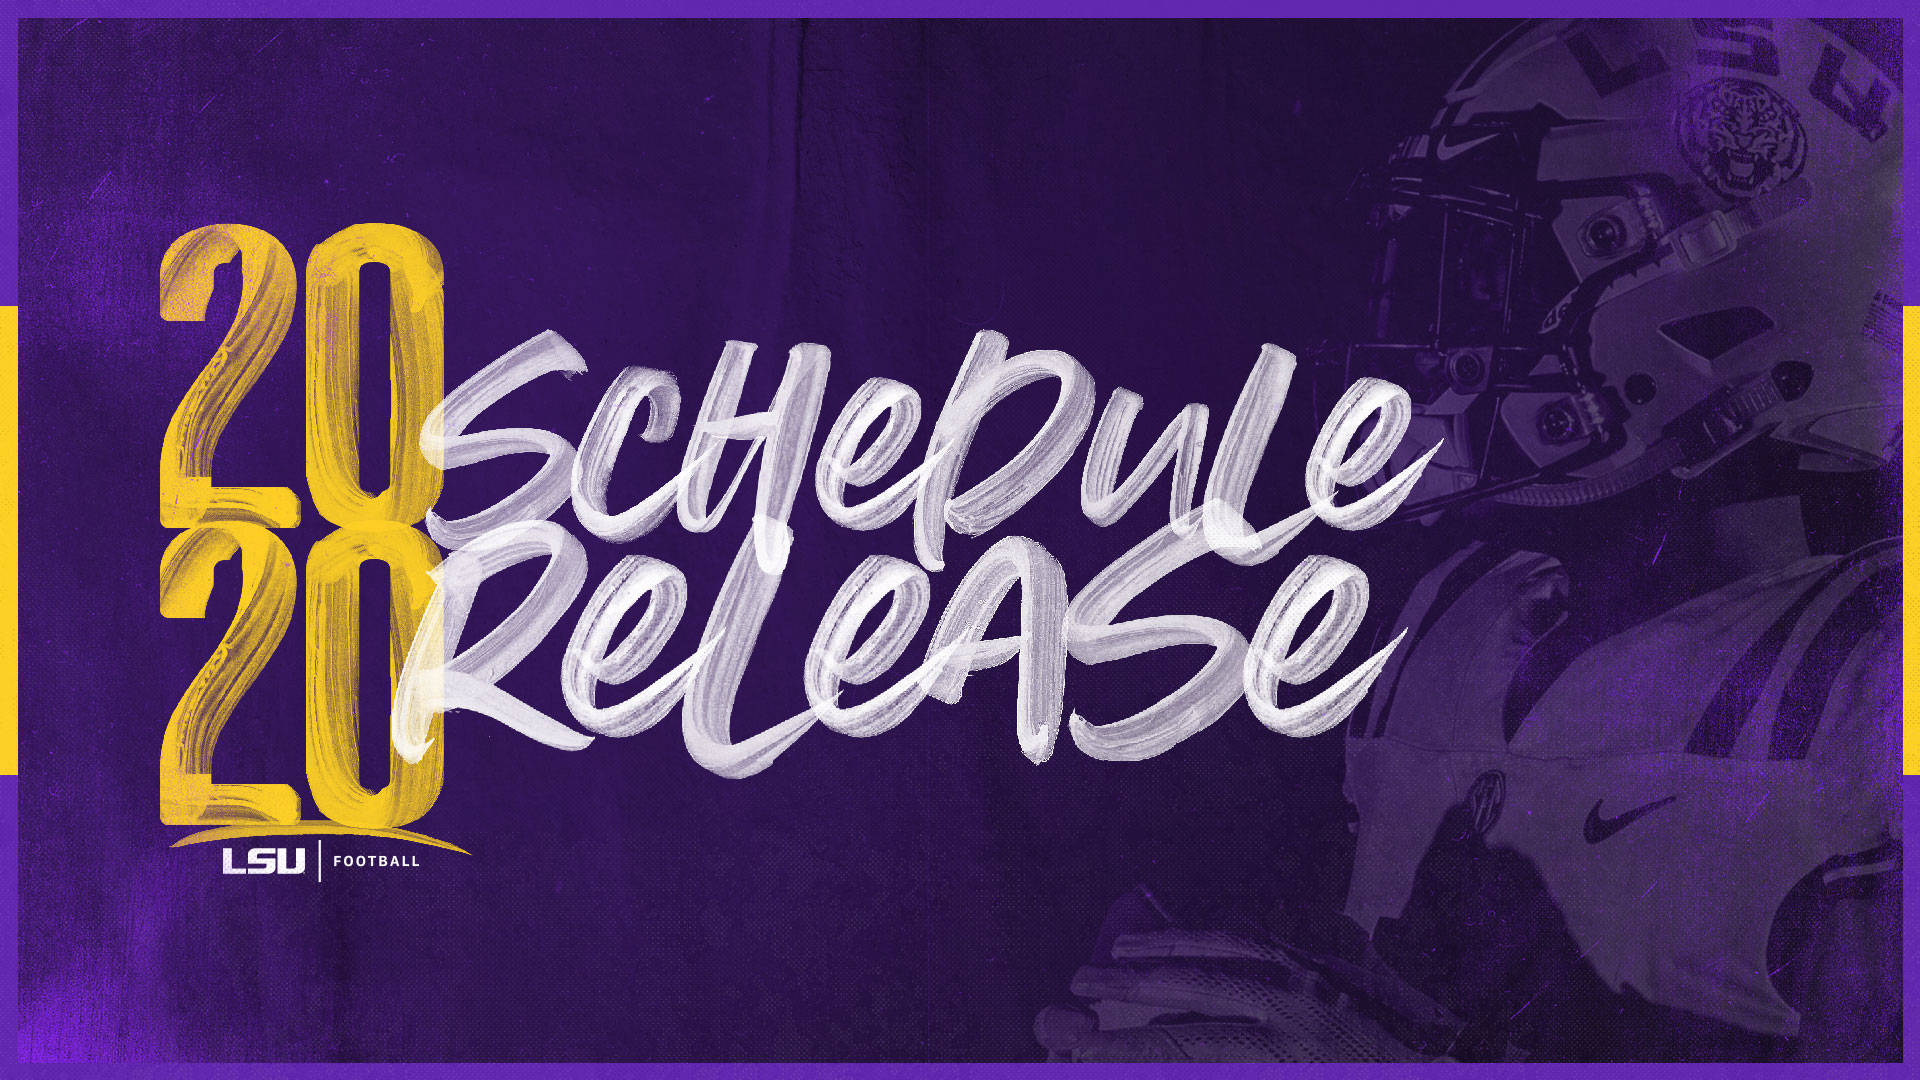 Lsu Announces 2020 Football Schedule - Lsu Tigers